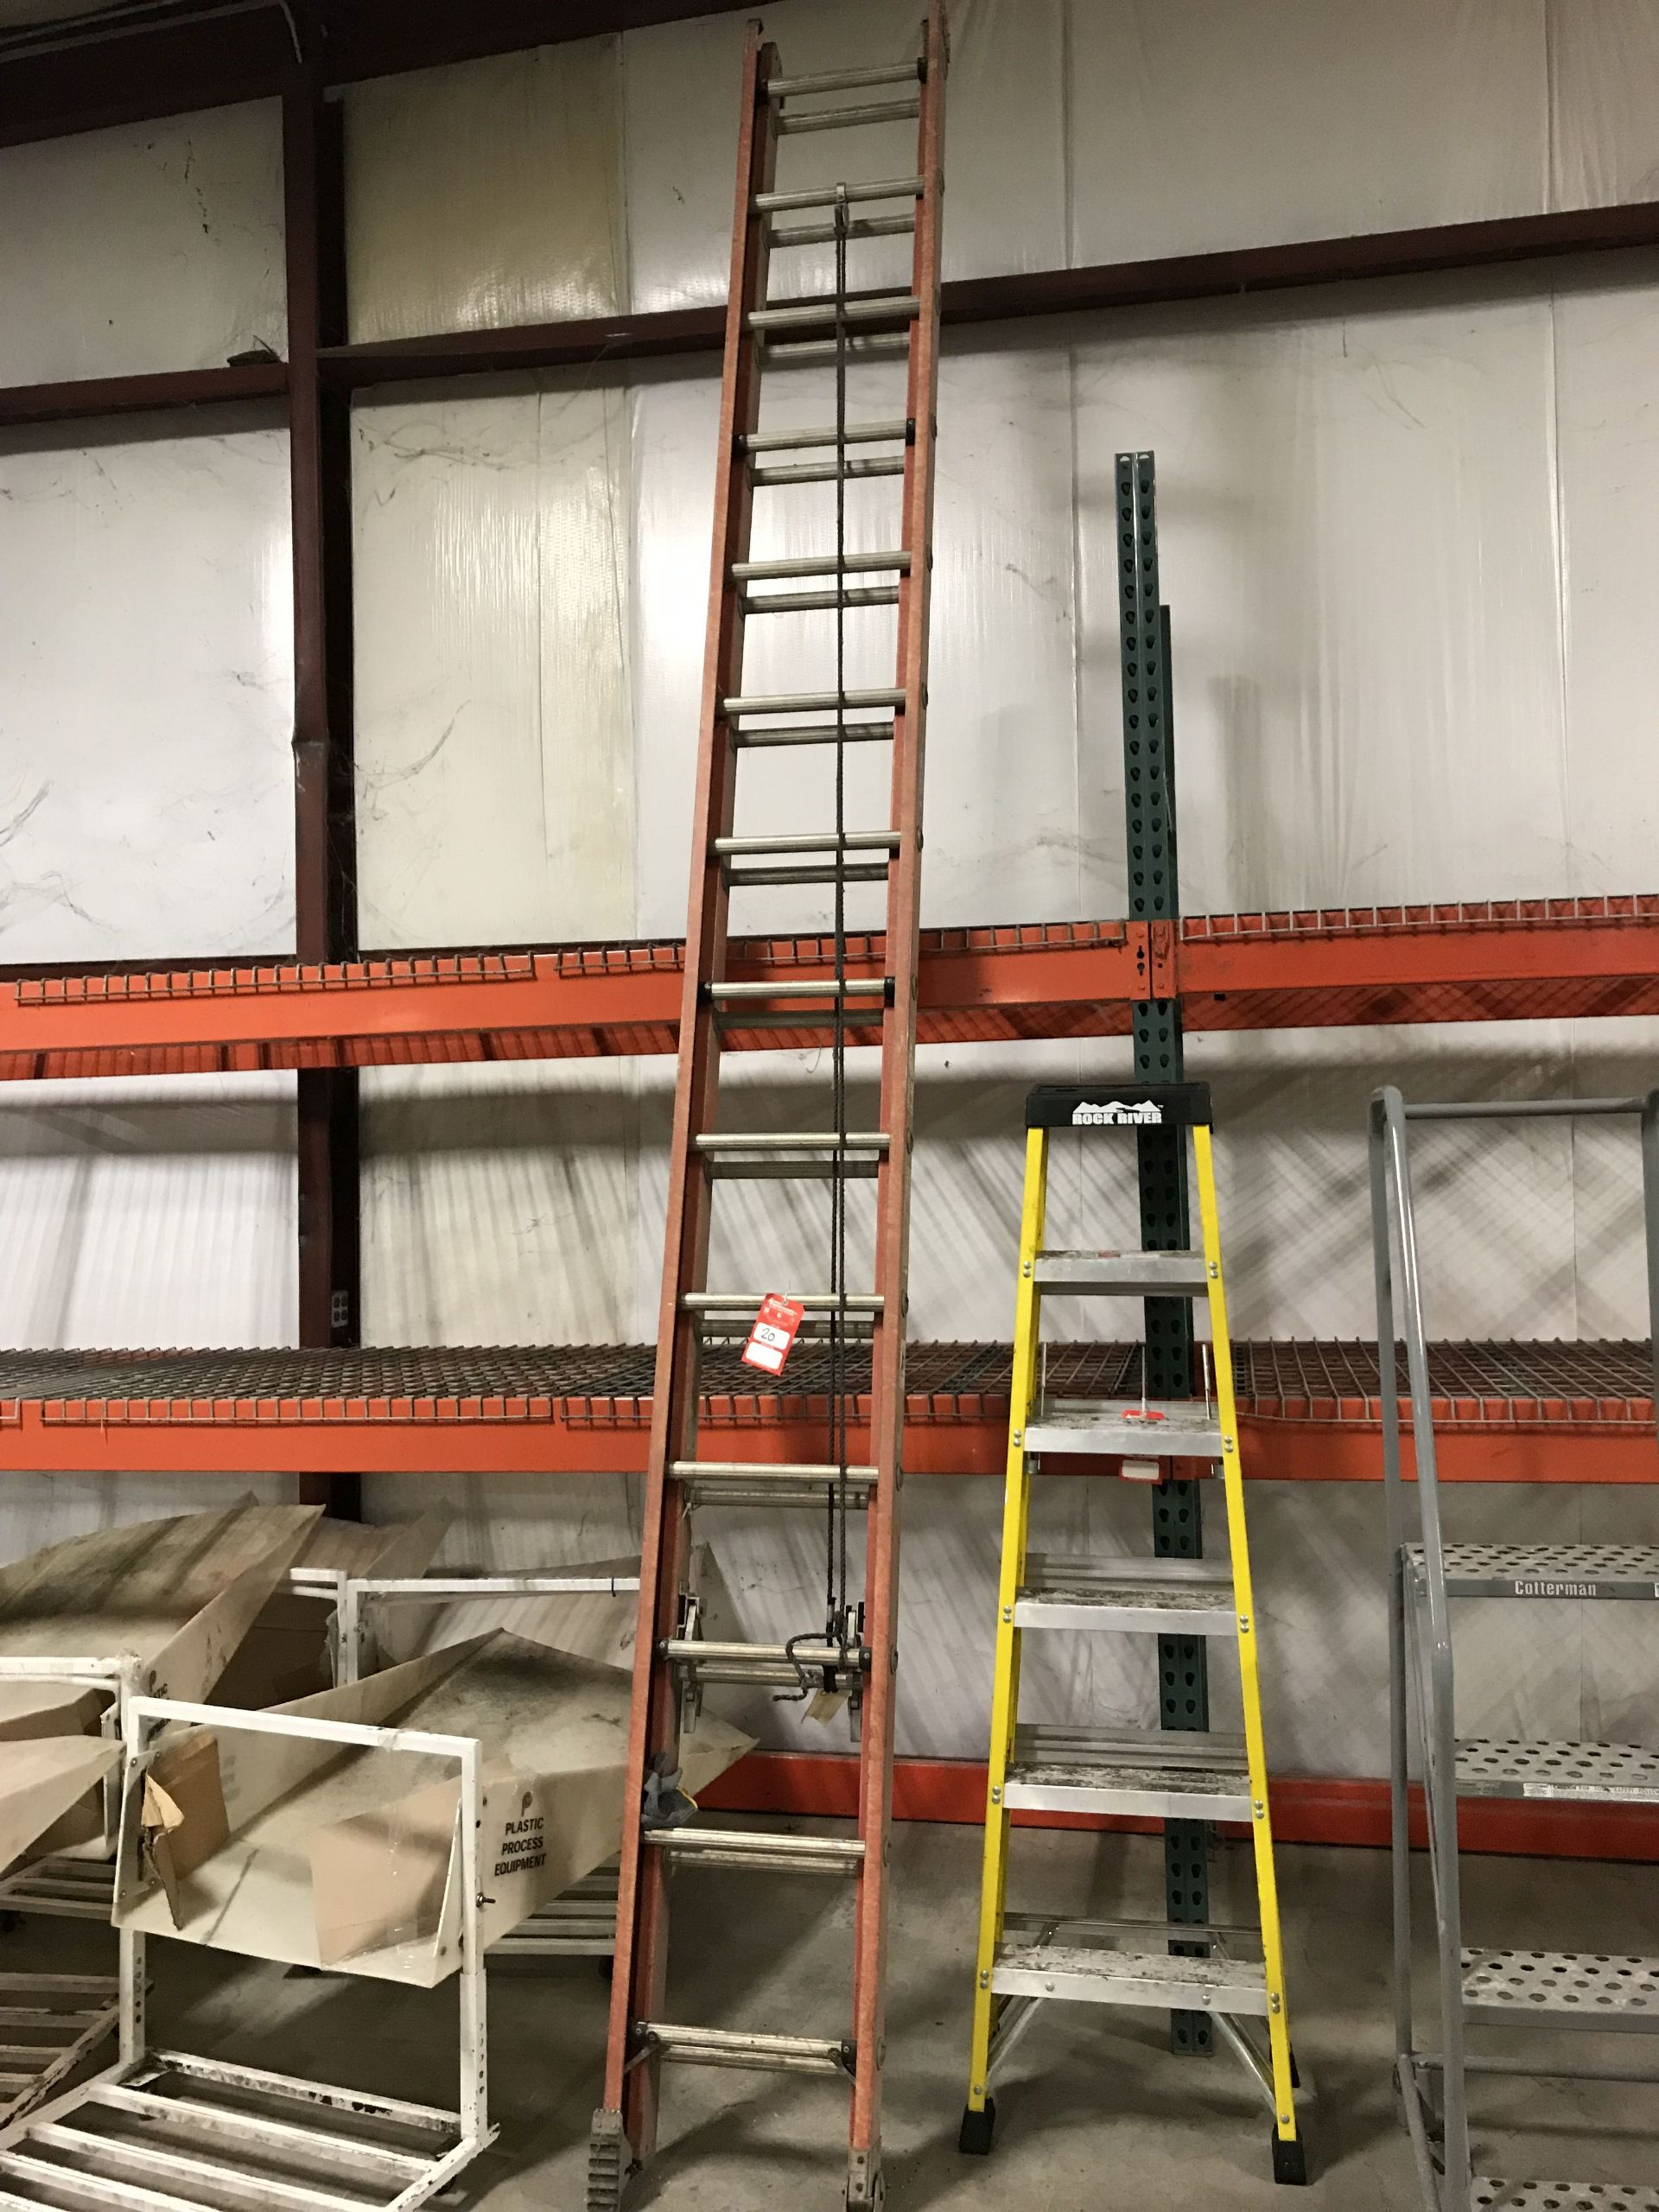 Lot 20 - WERNER 28' EXTENSION LADDER [LOCATION: BUILDING 1]